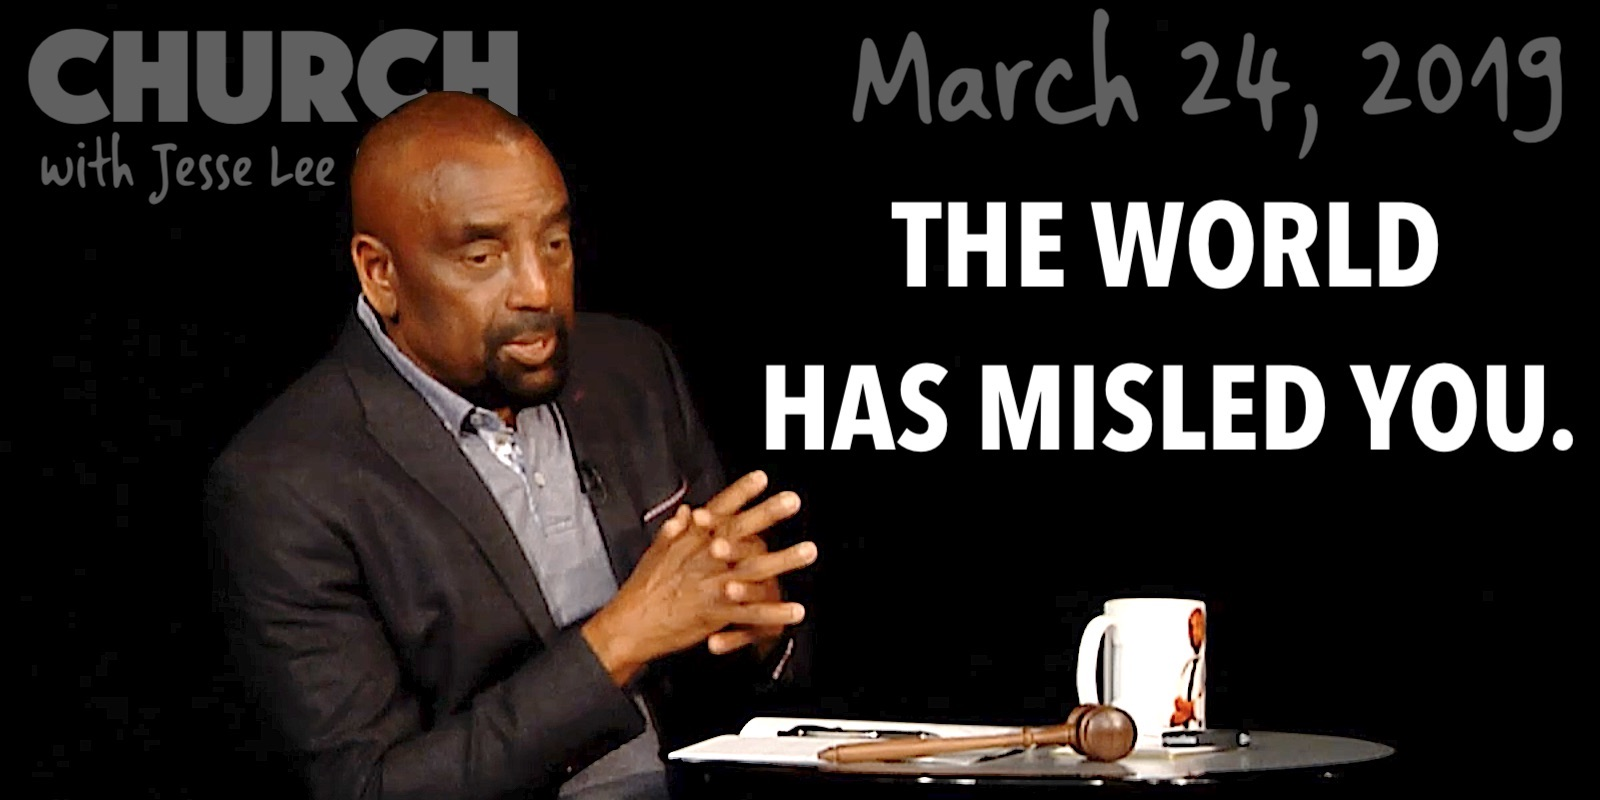 Church March 24, 2019: The World Has Misled You